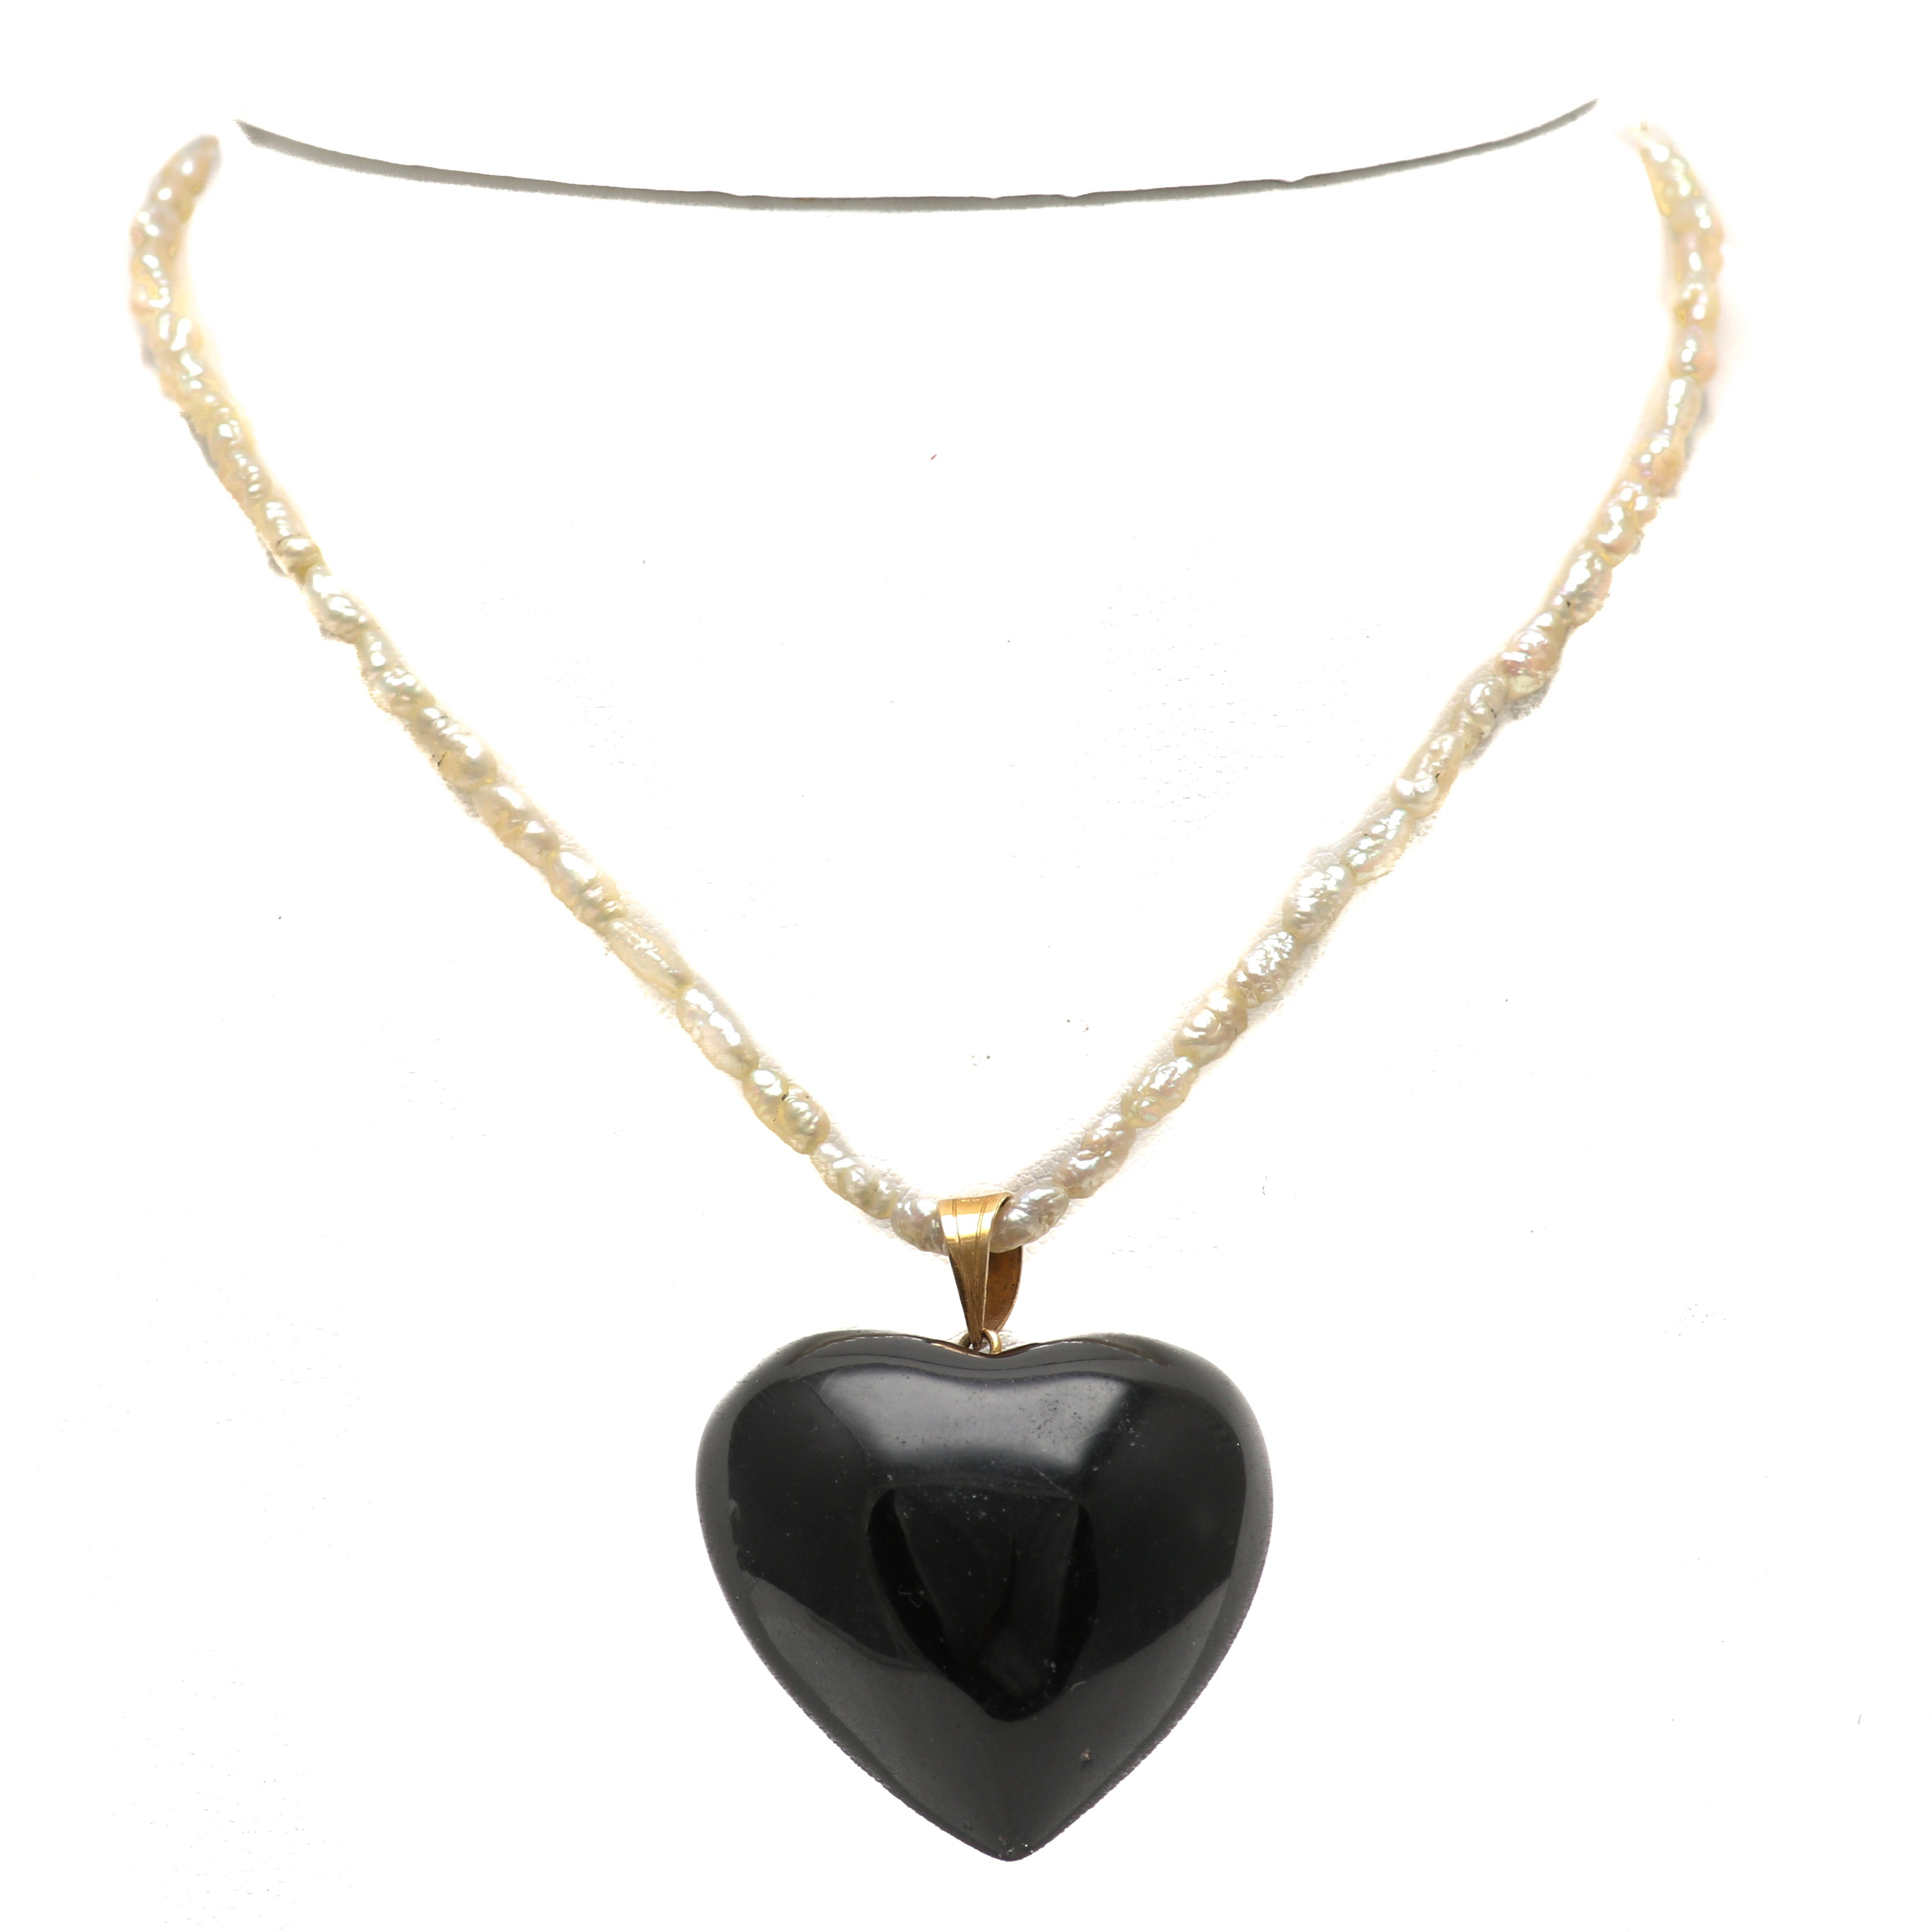 14K Yellow Gold Black Glass Heart Pendant on a Cultured Pearl Necklace